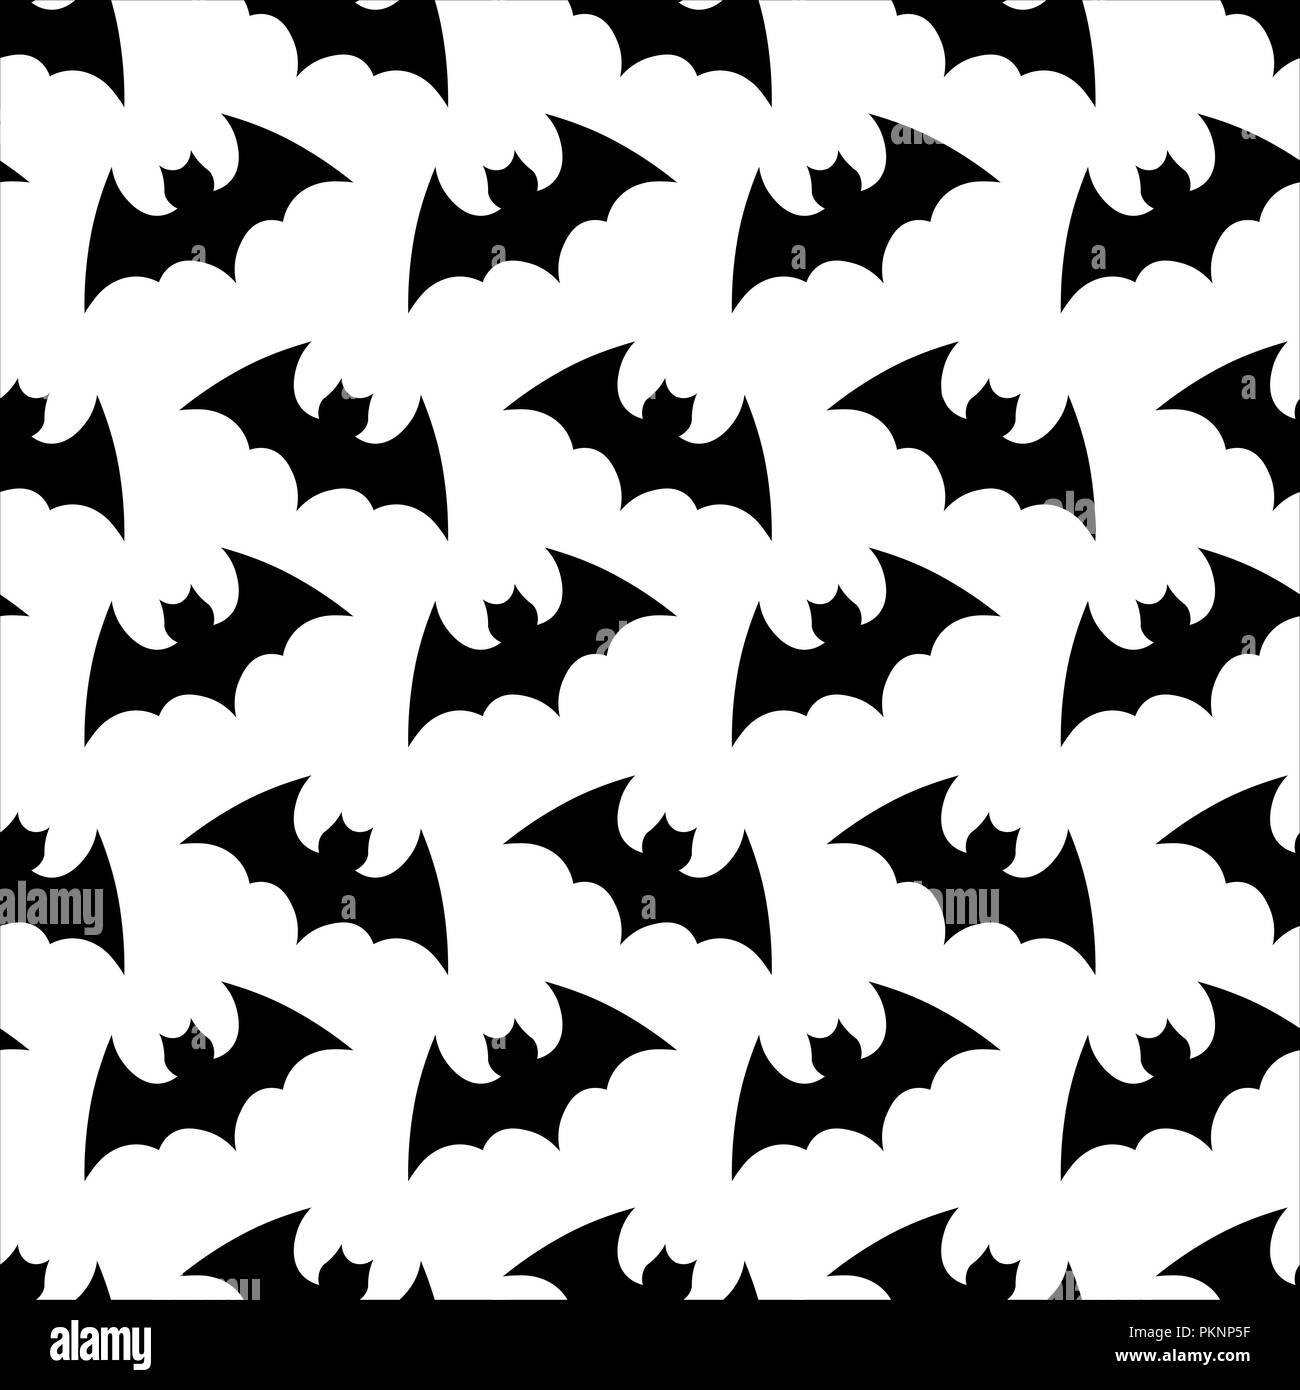 Seamless Pattern Halloween Background Halloween Flying Bat Halloween Vector Seamless Pattern Wallpaper Background Silhouette Of Bats Stock Vector Image Art Alamy